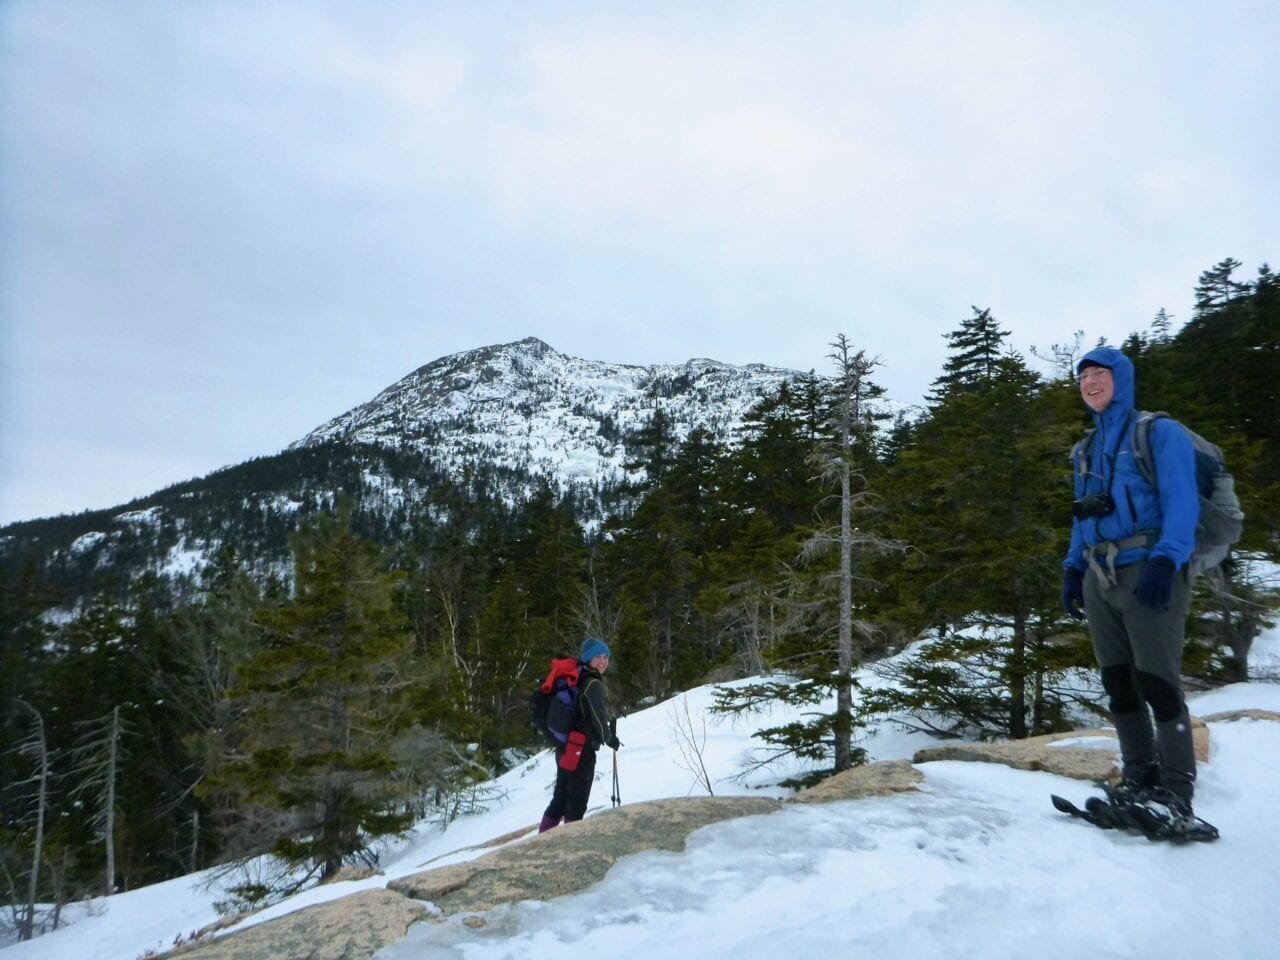 Two hikers stand in front of a view of a snowy mountain and evergreen forest.